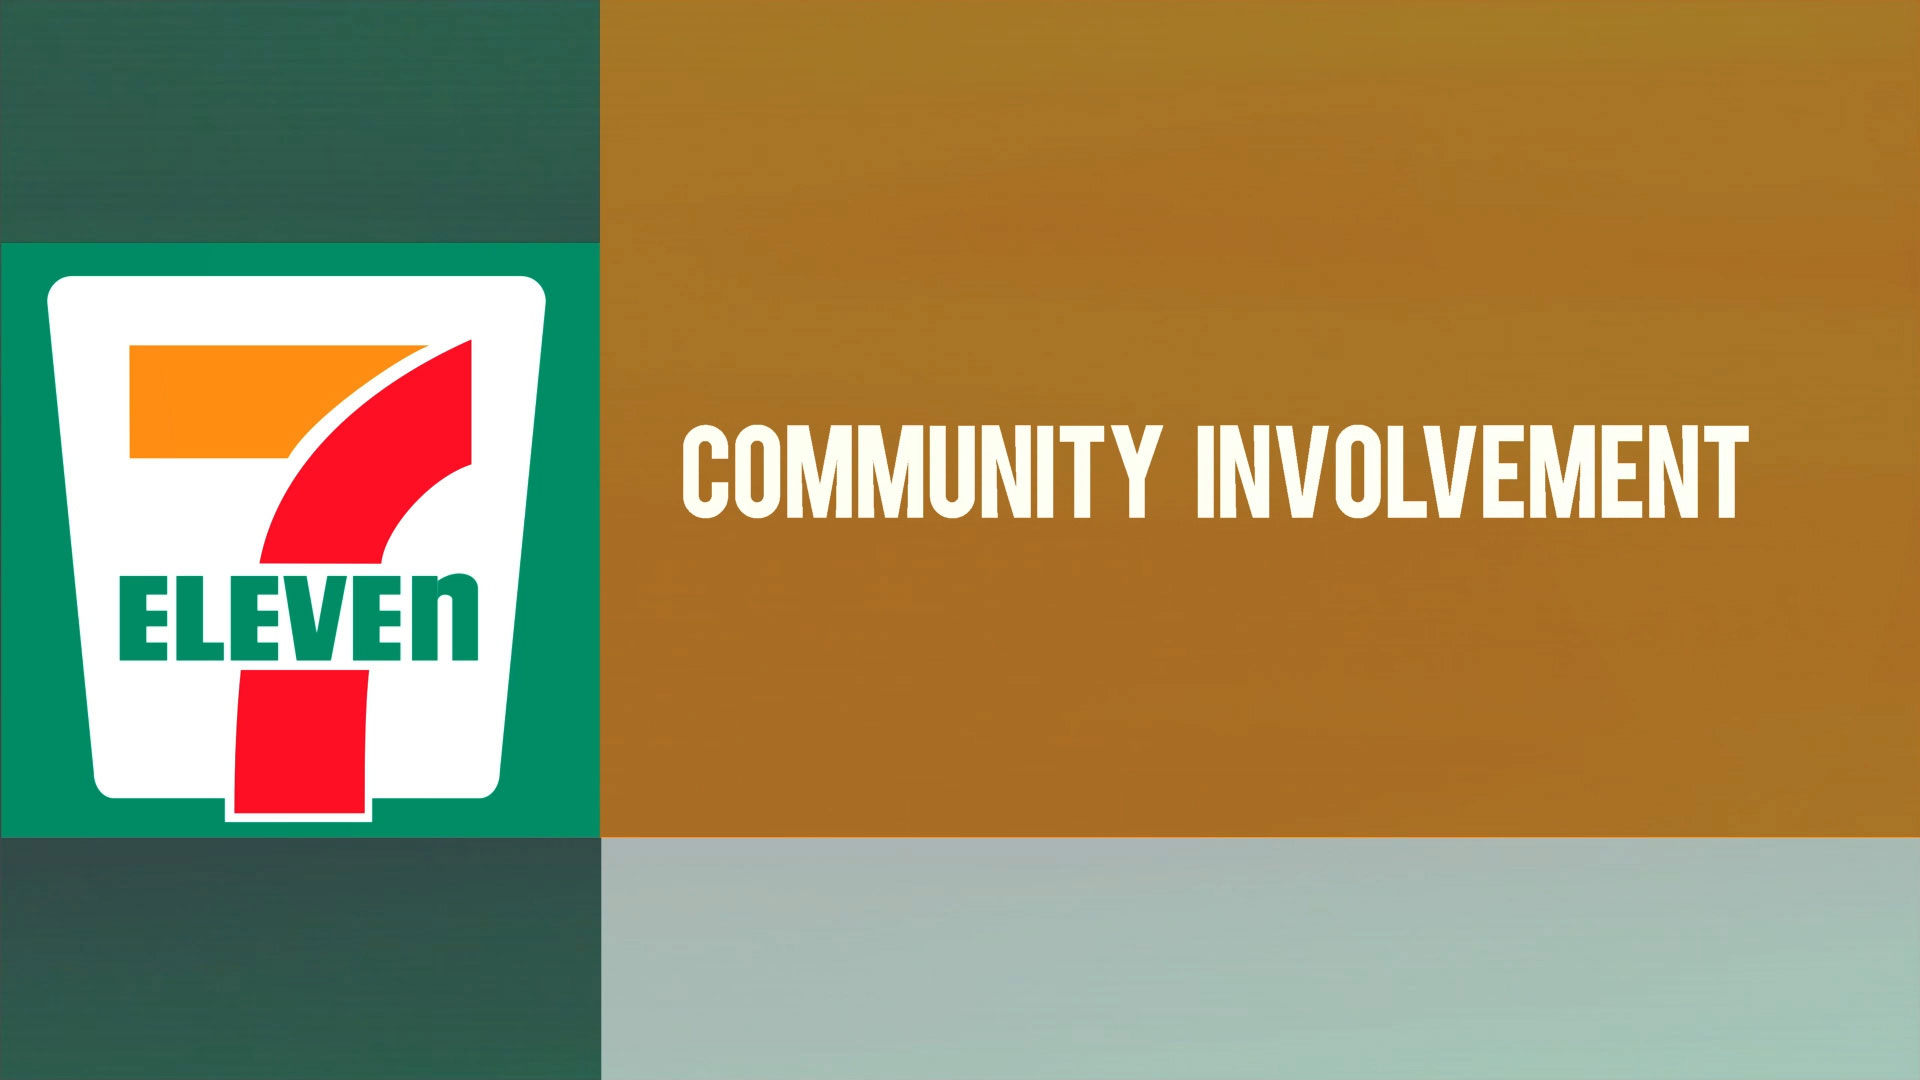 7-Eleven Community Involvement